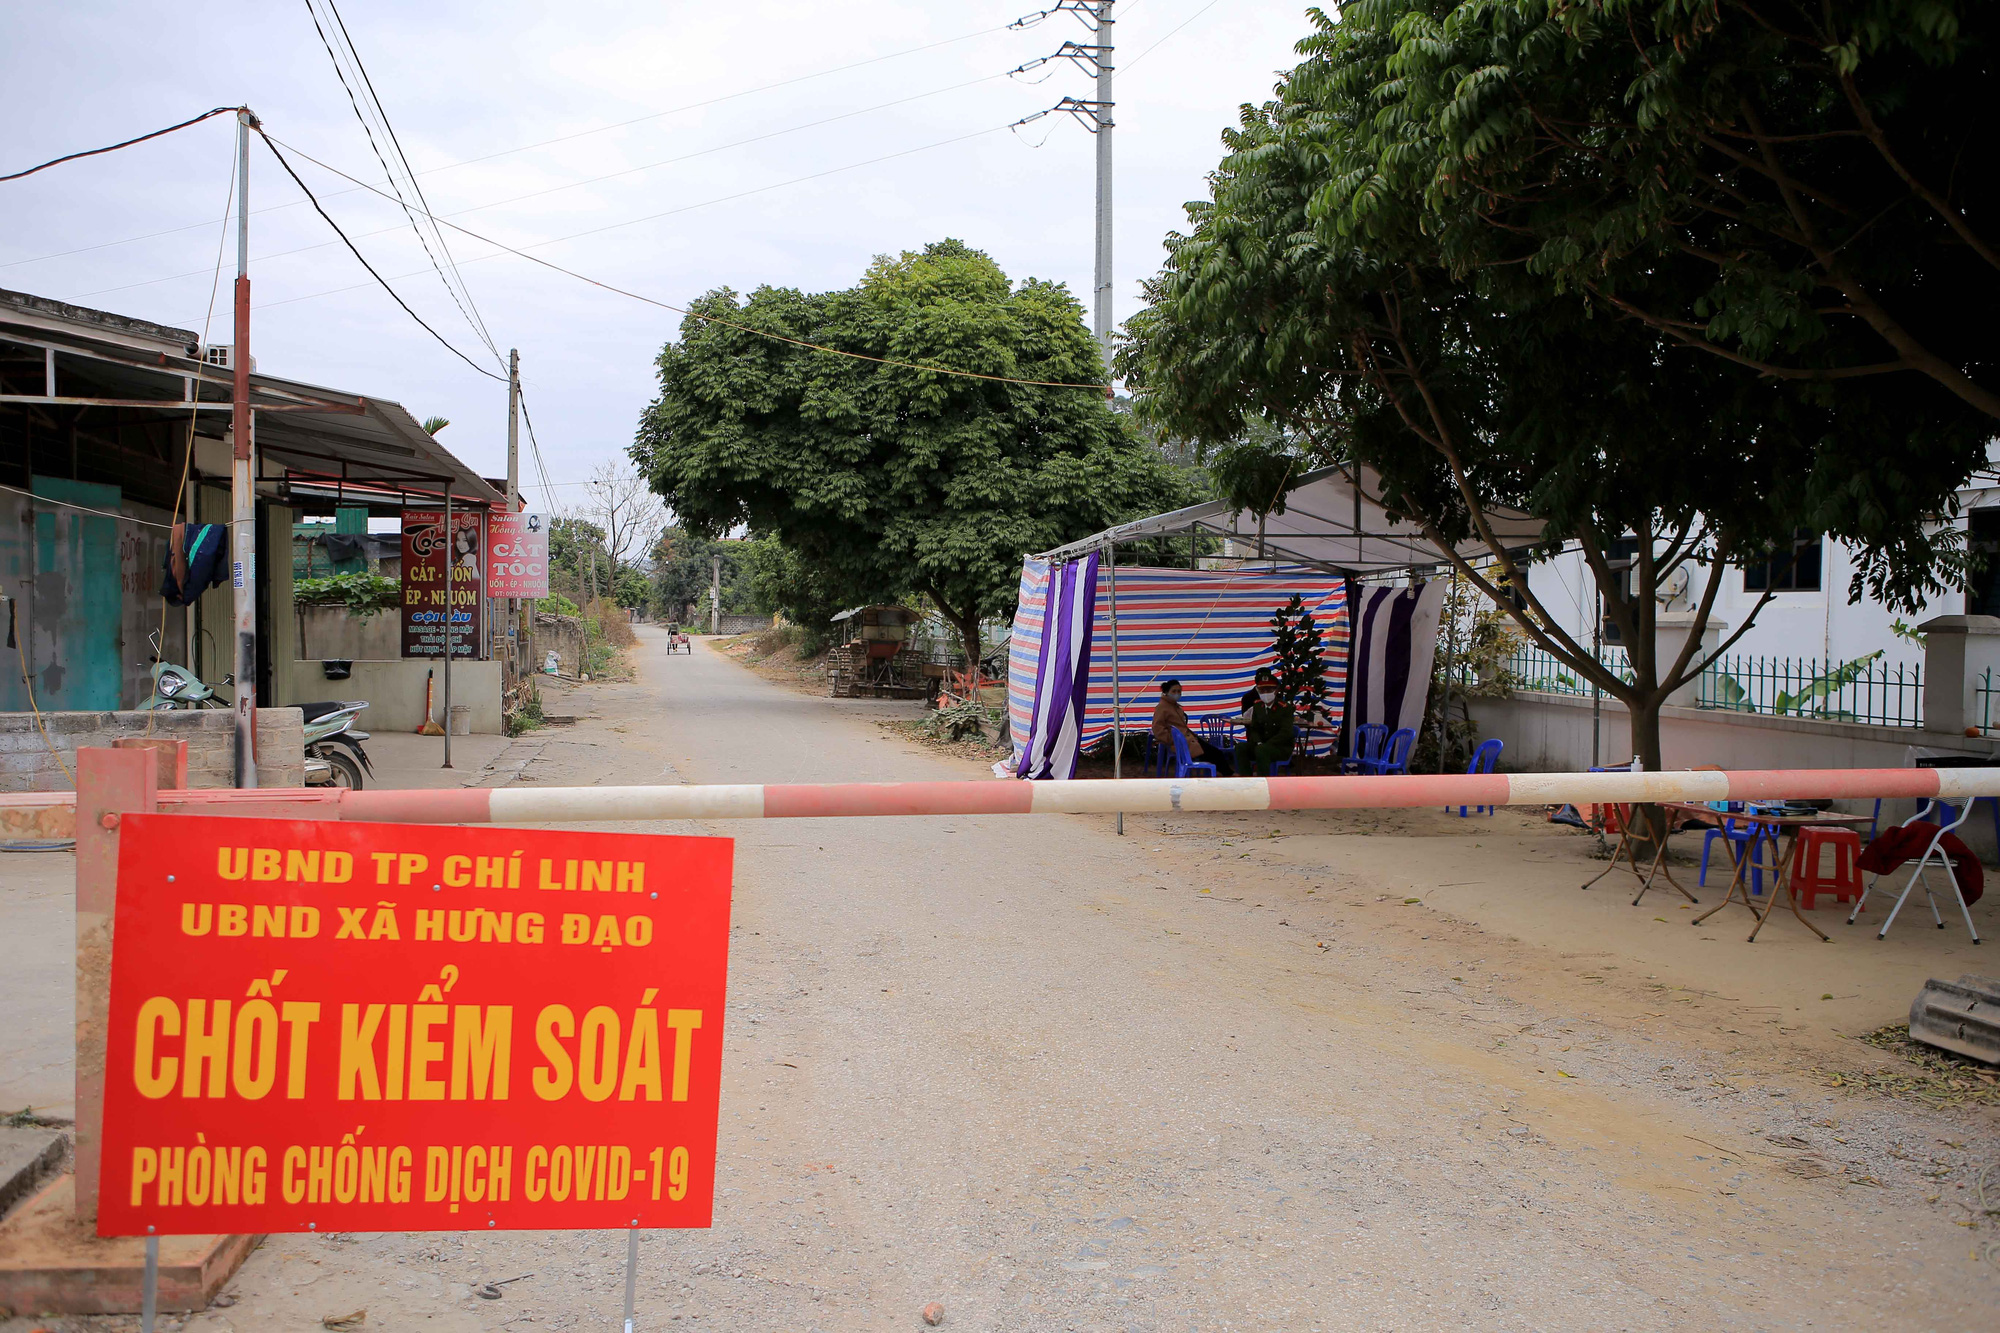 A COVID-19 checkpoint is set up at Hung Dao Commune, Chi Linh City, Hai Duong Province, January 28, 2021. Photo: Anh Cuong / Tuoi Tre